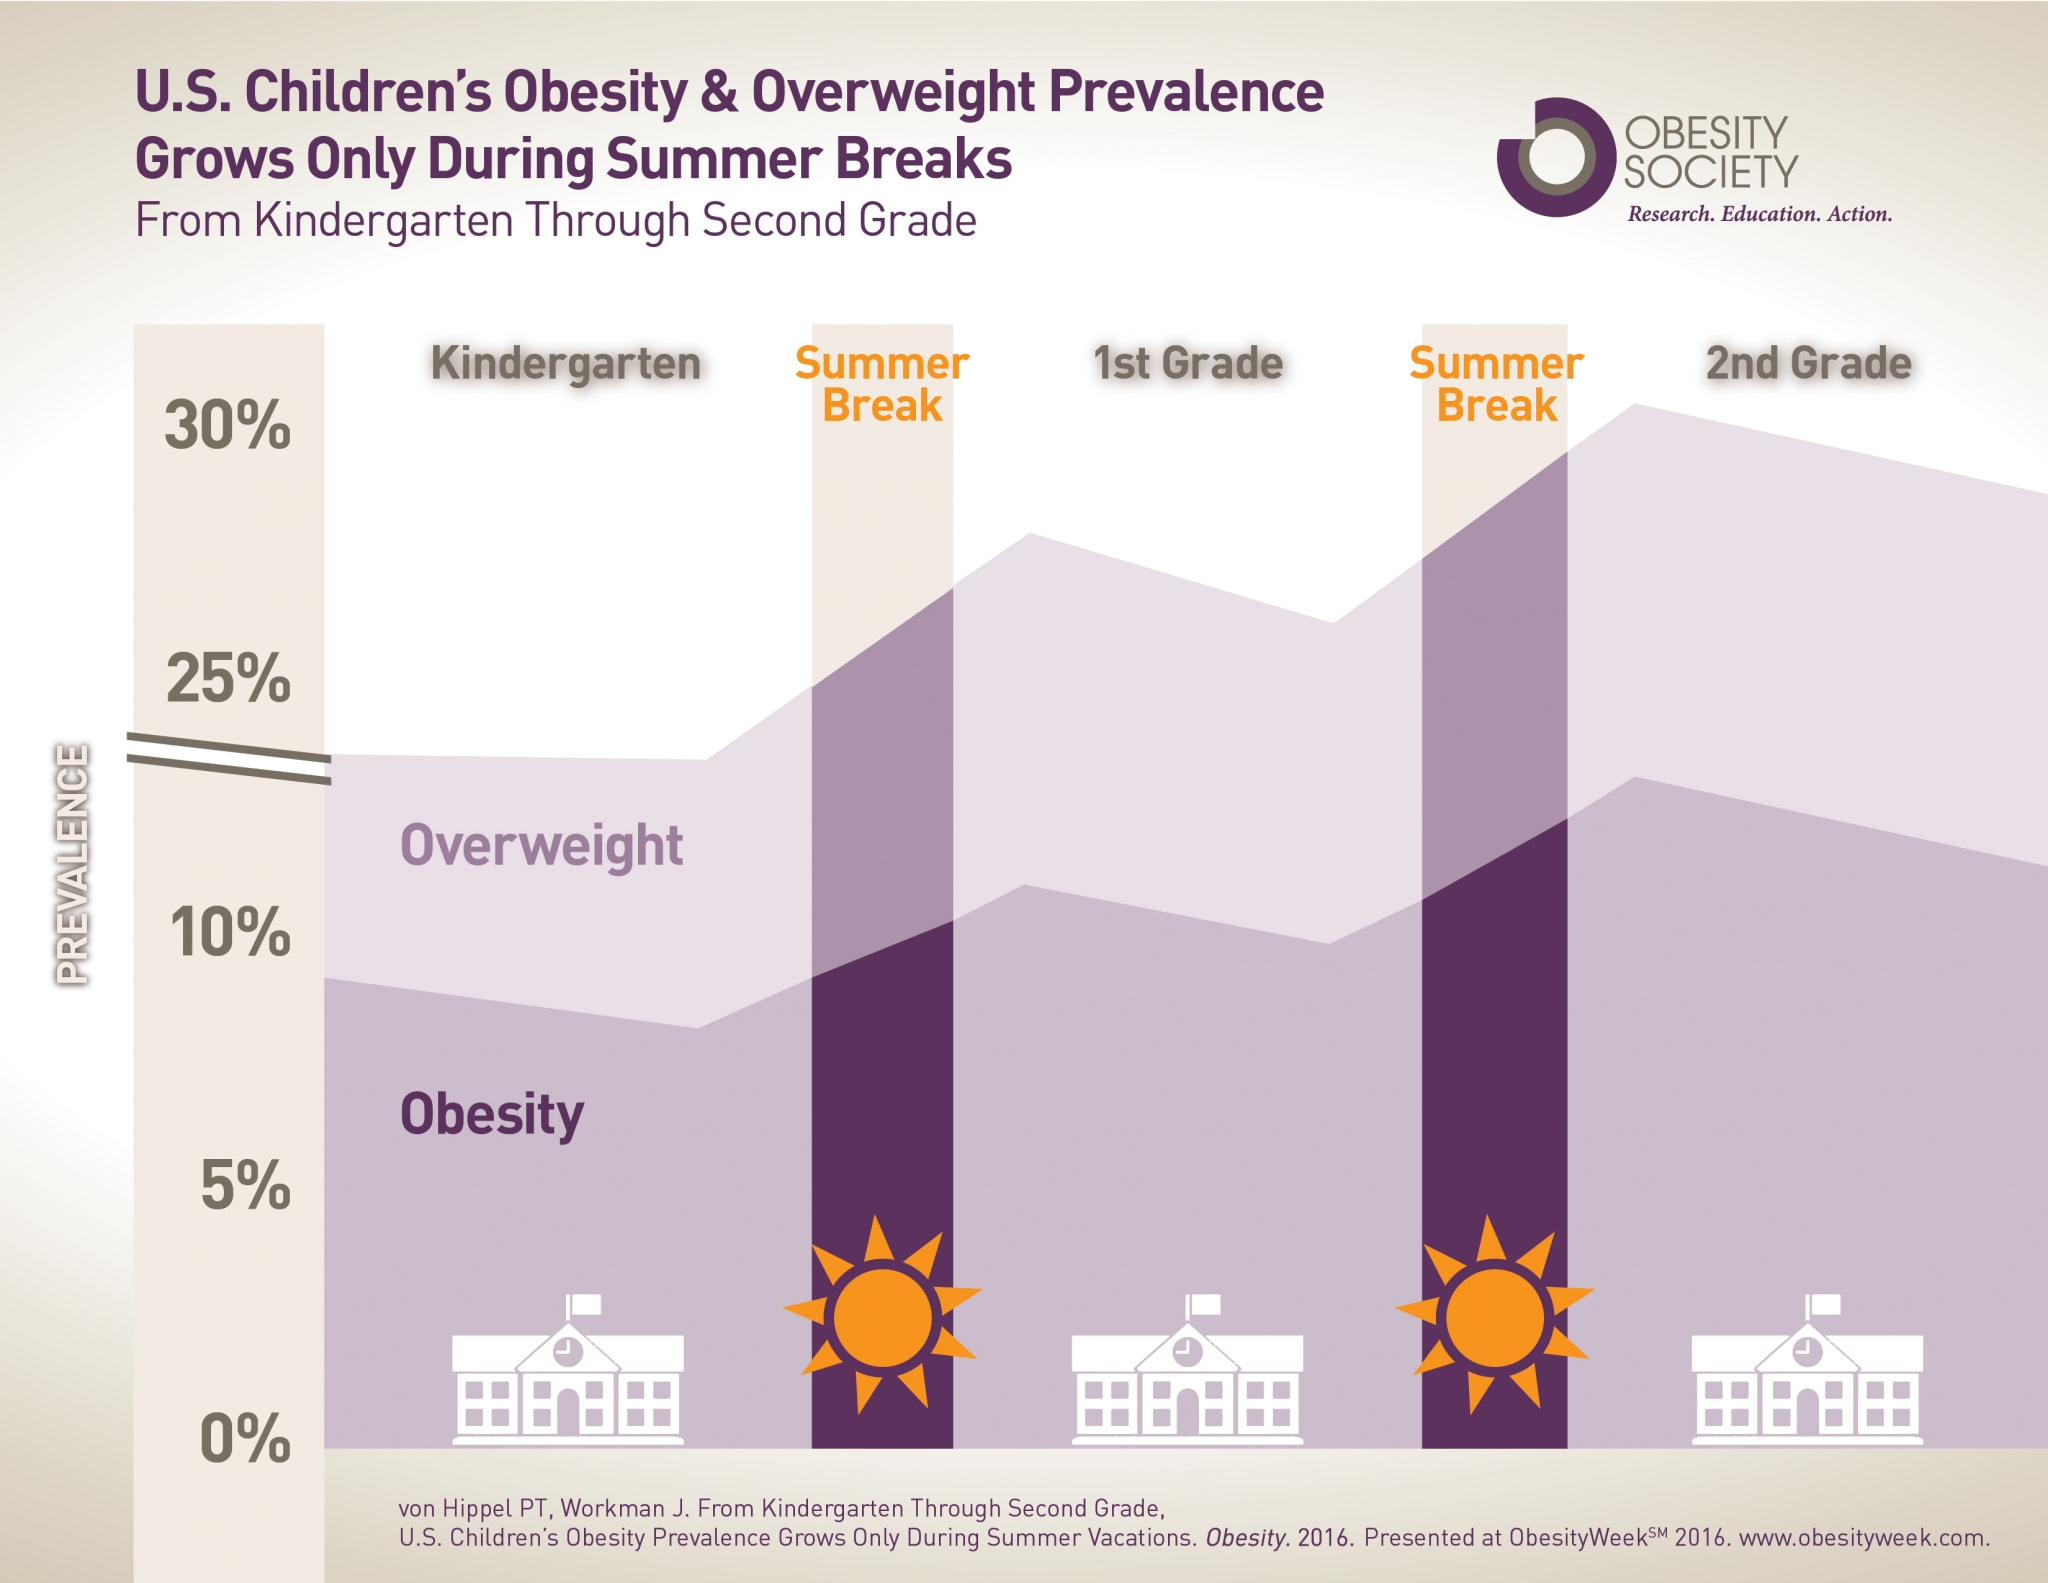 childhood obesity new zealand essay Essay about childhood obesity - at present approximately 9 million children over 6 years of age are considered obese (mahshid dehghan) childhood obesity continues to increase every year childhood obesity has a lot of causes centering on an imbalance of energy taken in and the amount of energy used.